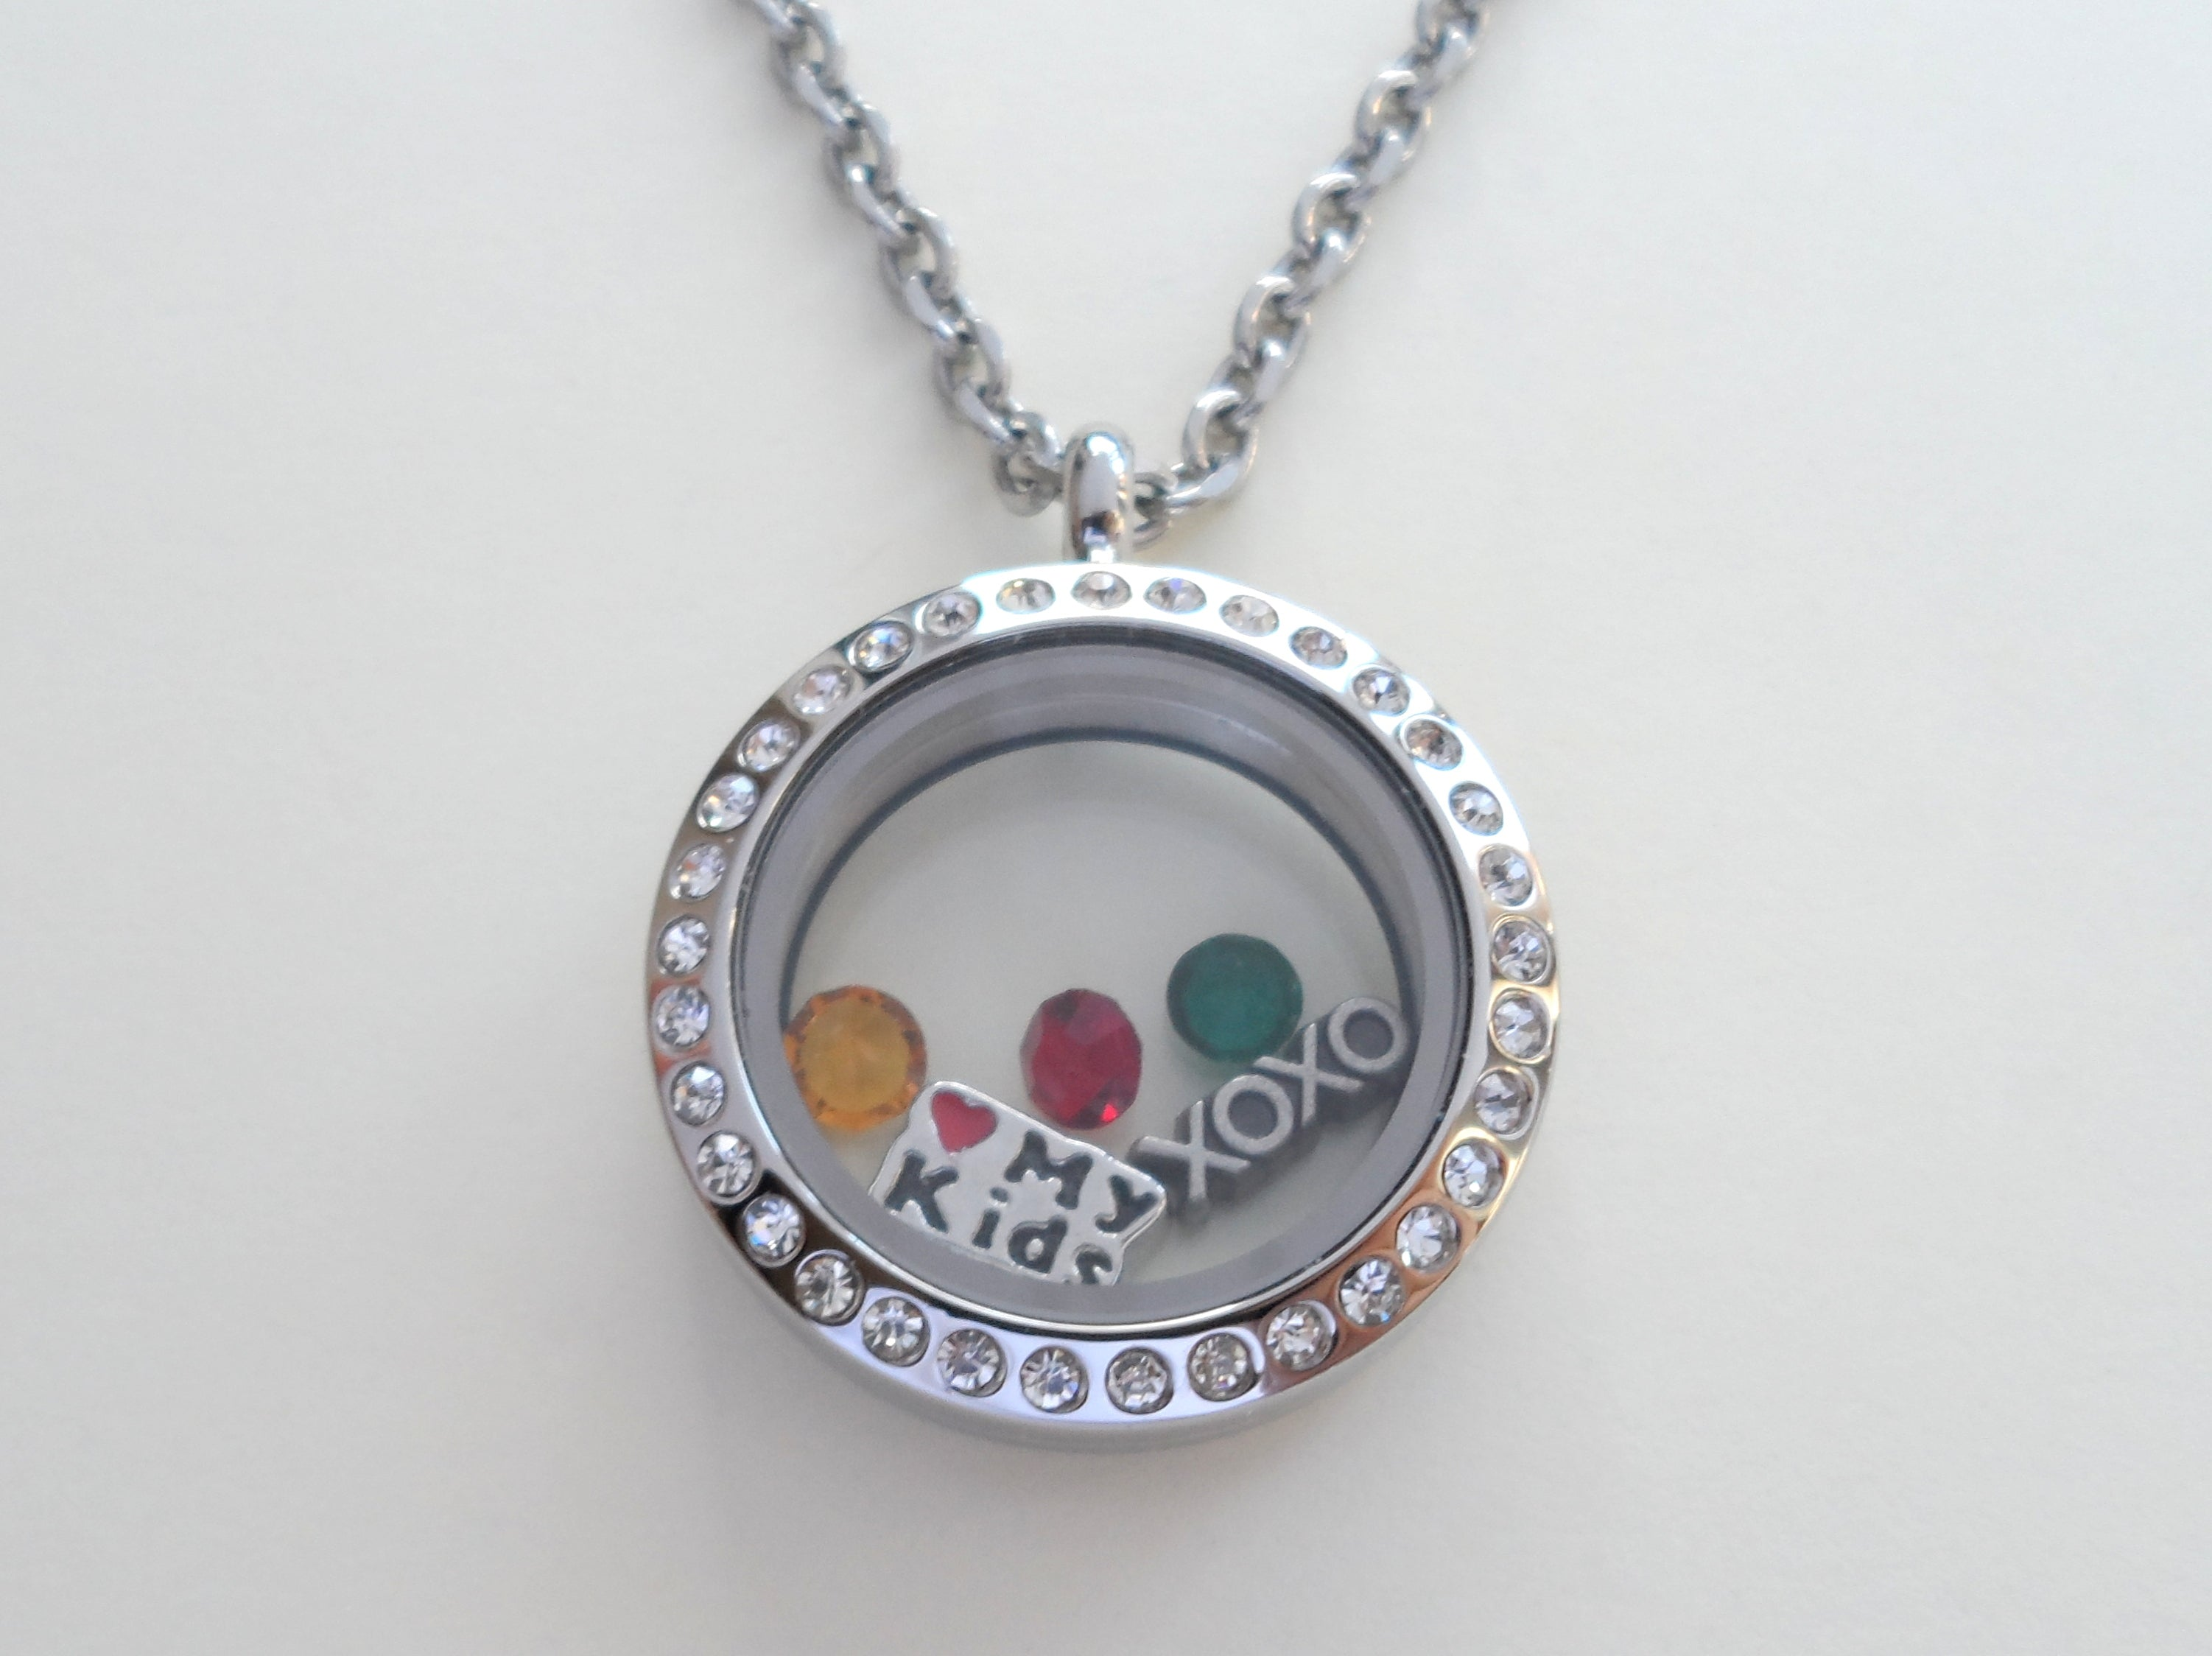 tania silver bracelet lockets made with friendship jewellery sterling crystals swarovski